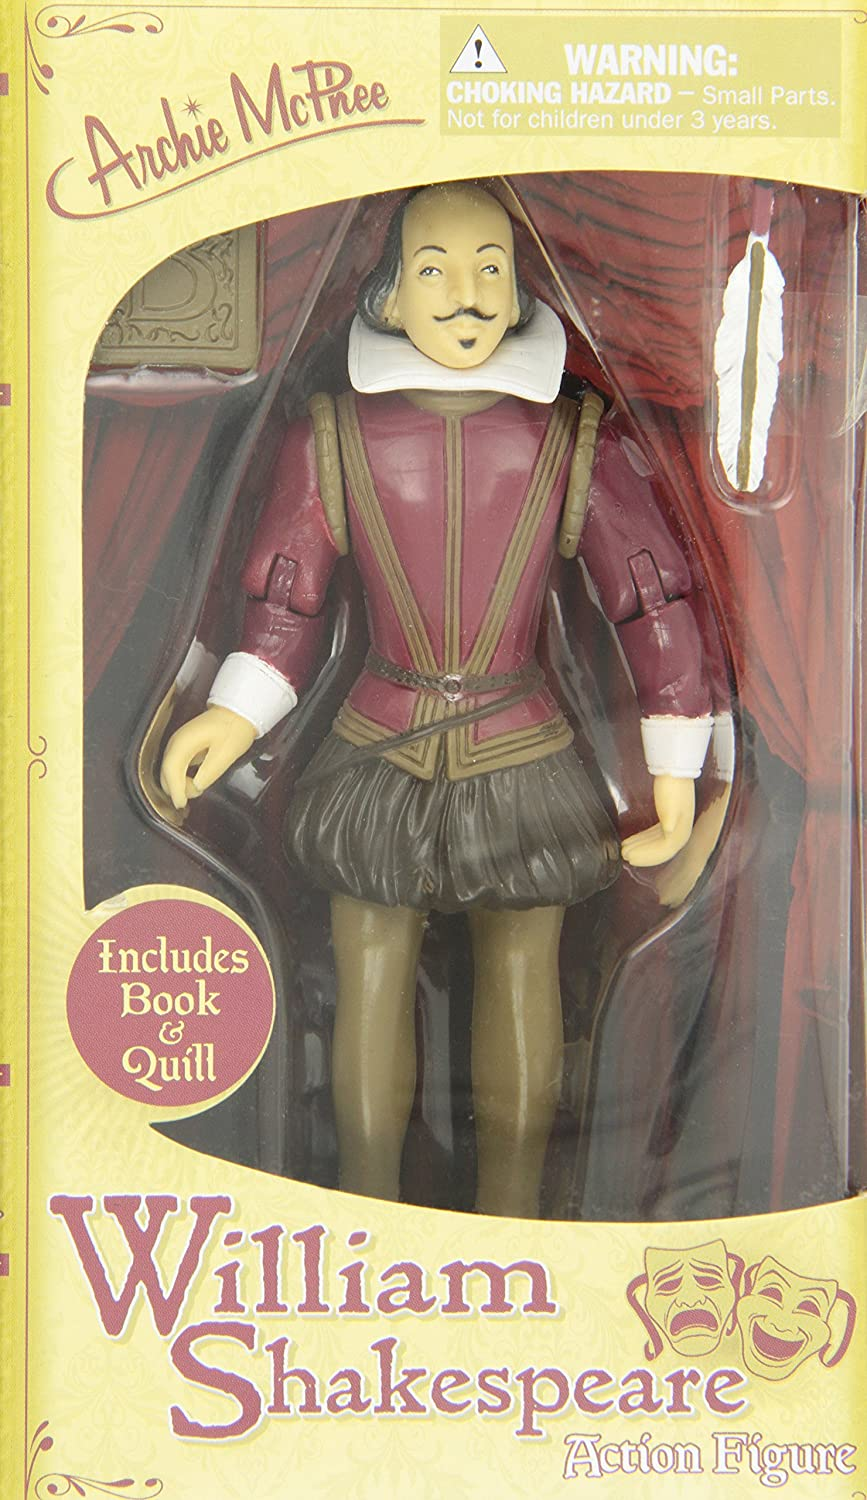 [Shakespeare action figure]